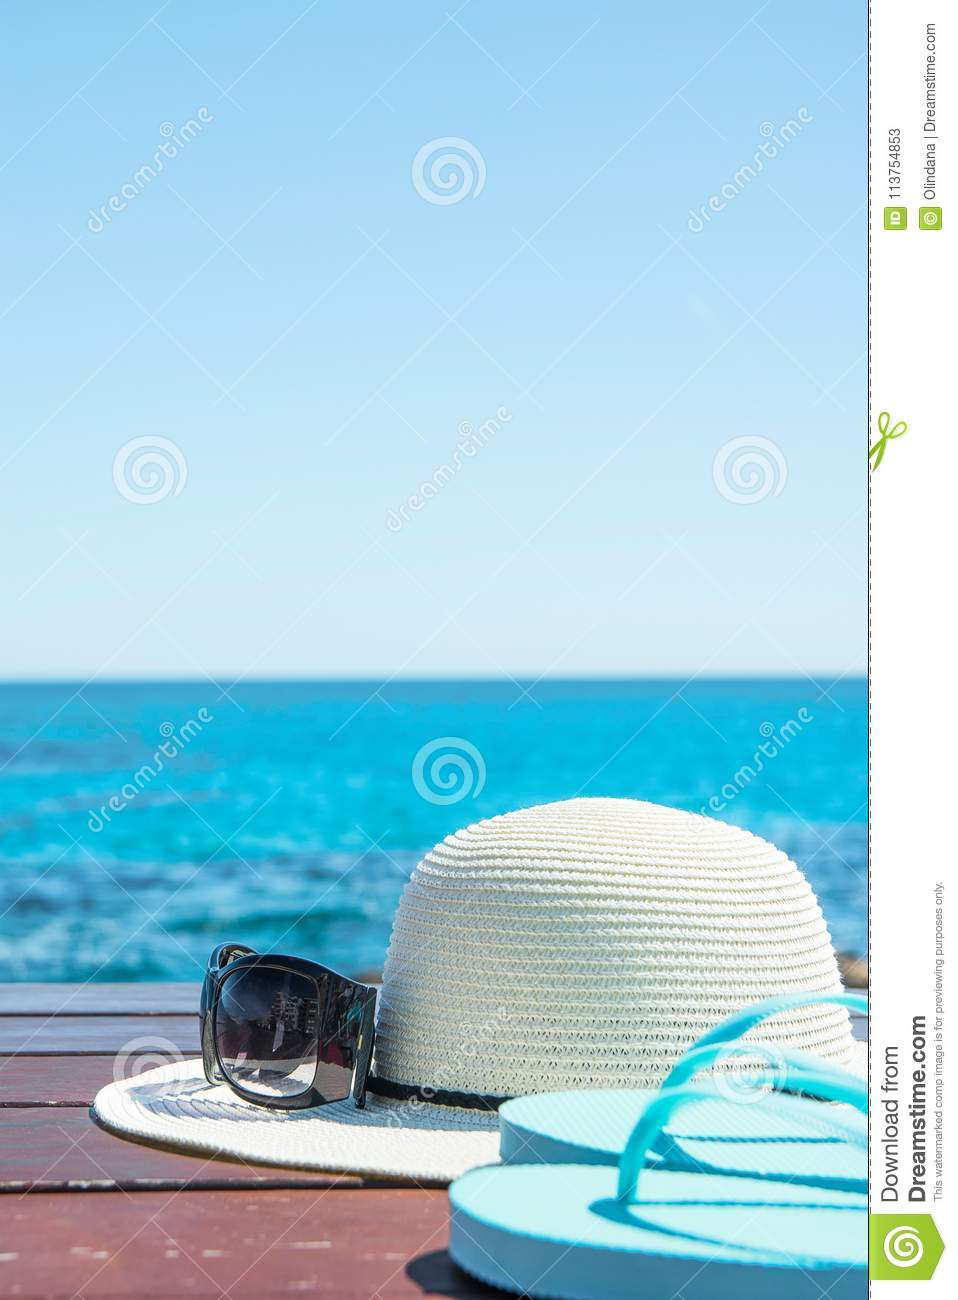 Hat Sunglasses Slippers on Blue Sky and Turquoise Sea Background. Summer Vacation Travel Relaxation. Idyllic Seascape View